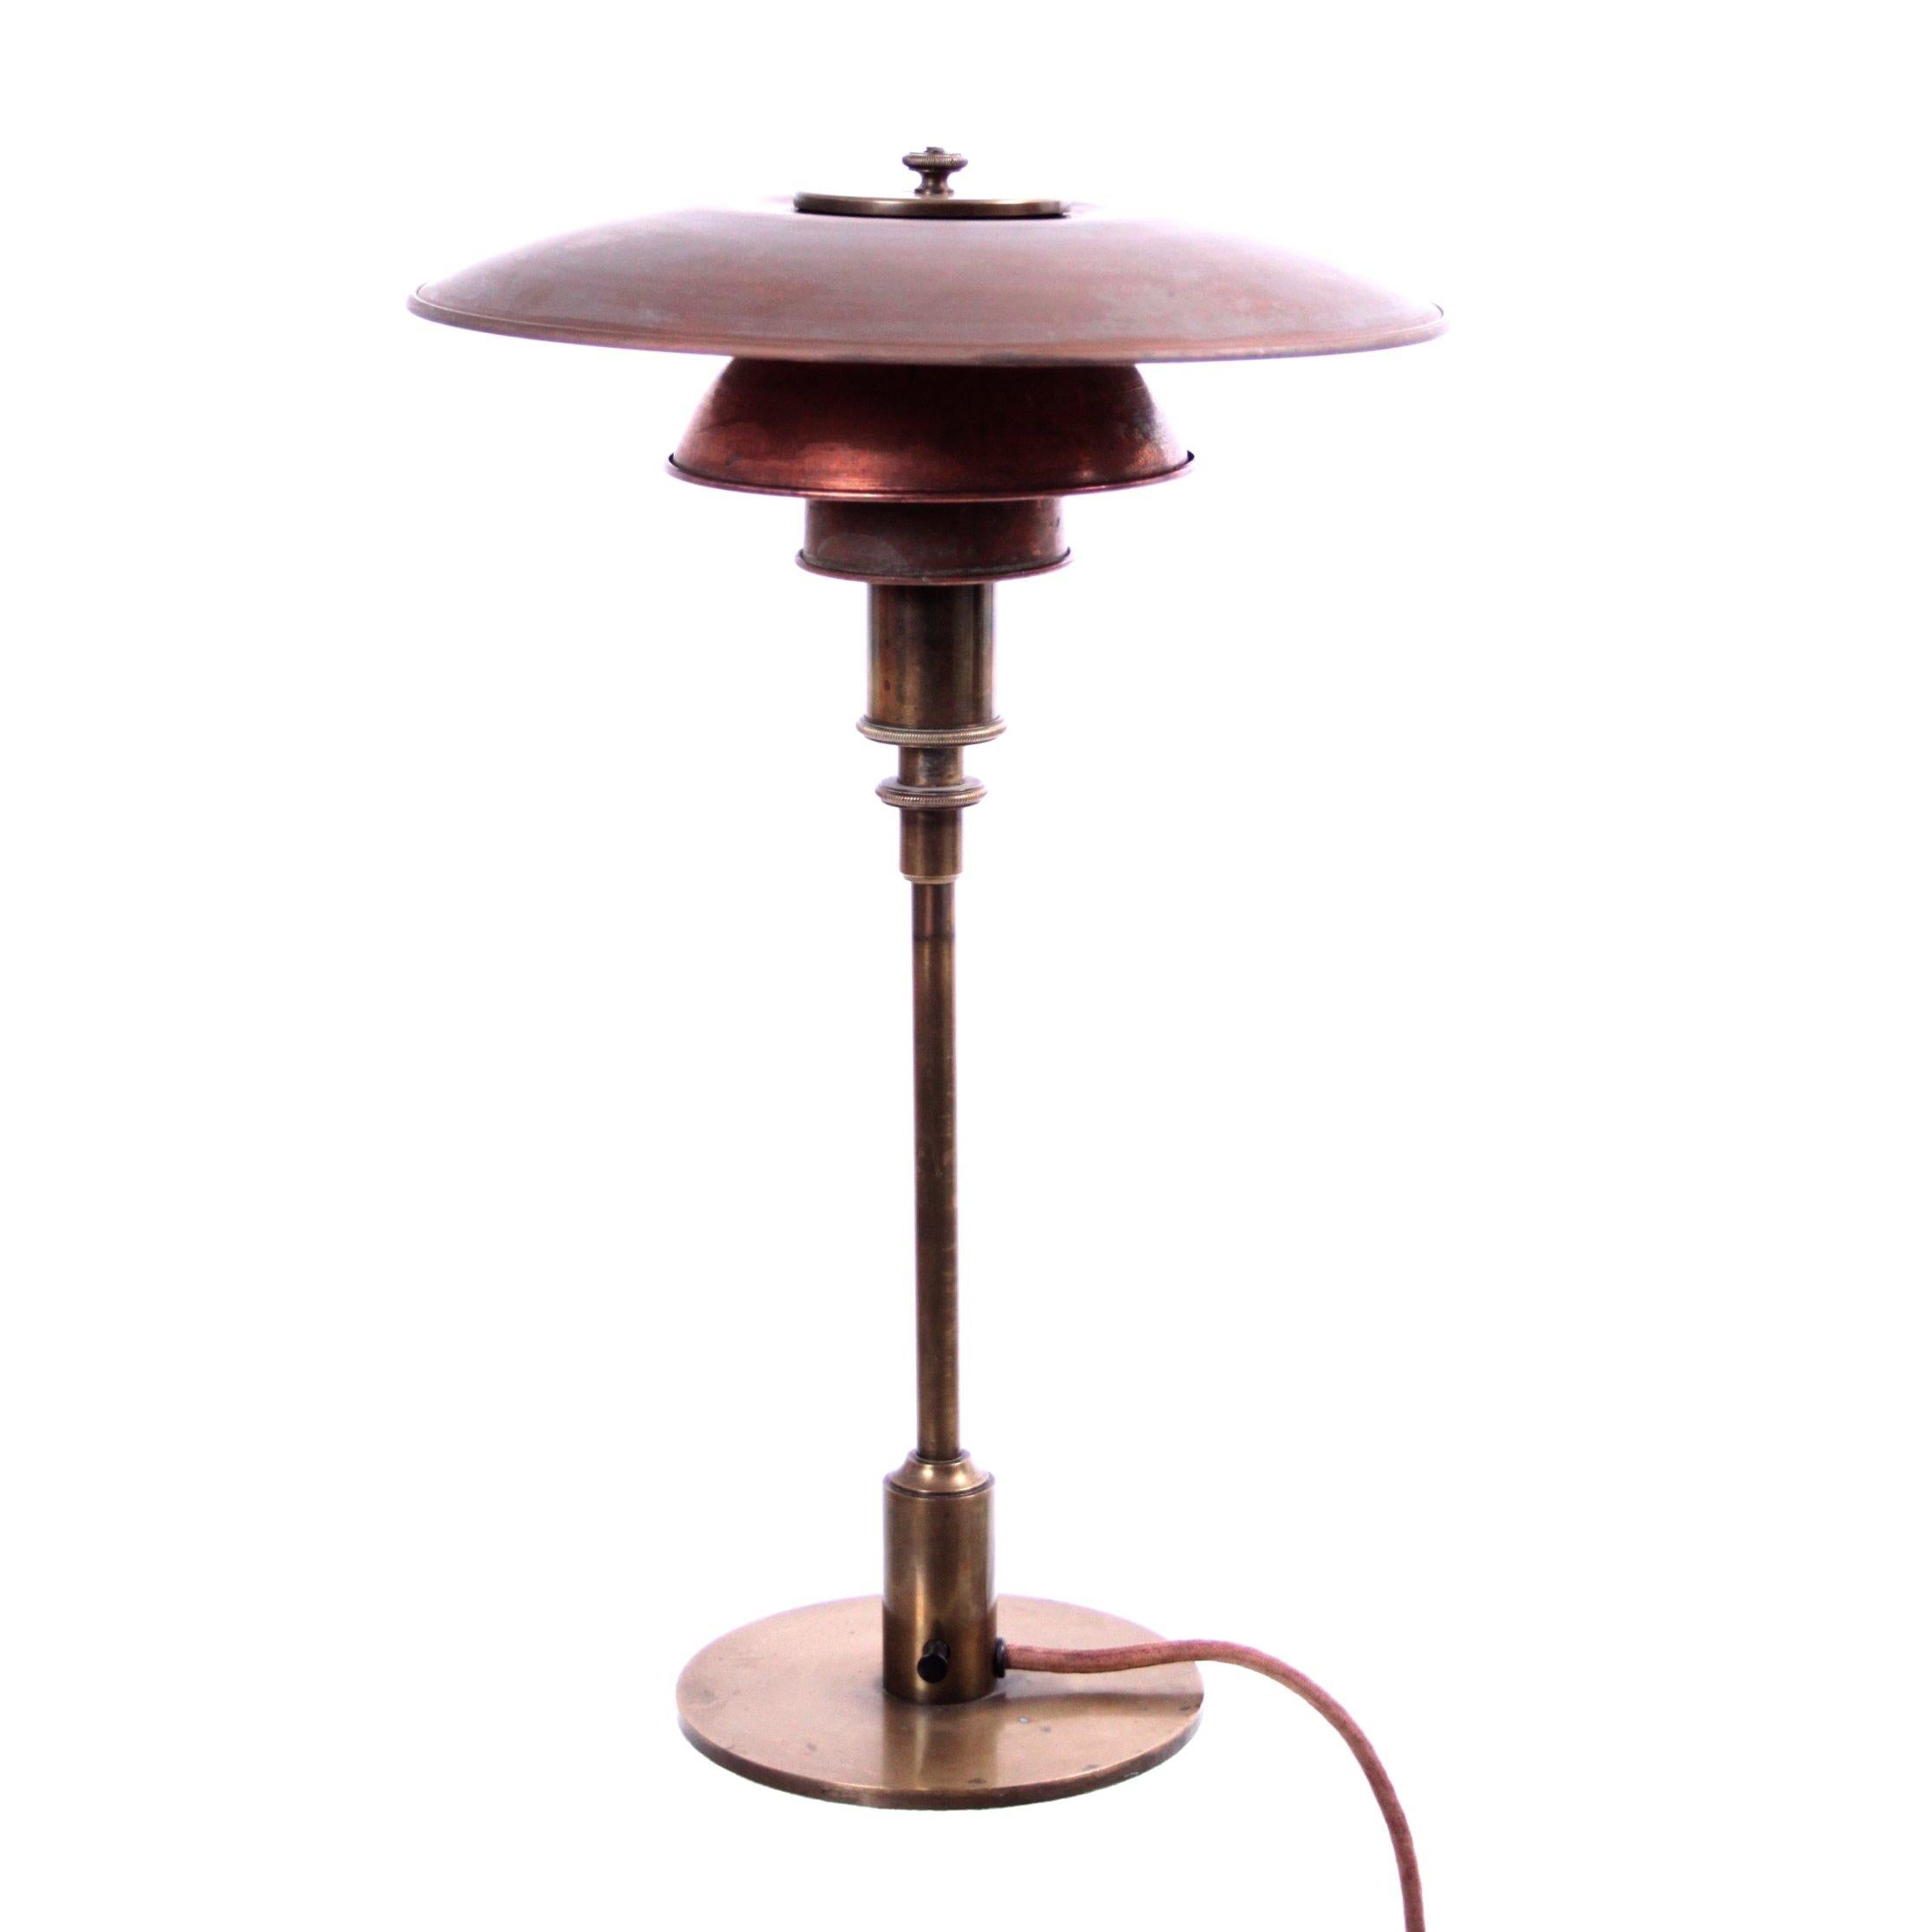 Early Poul Henningsen Table Lamp in Brass with Copper Shades, 1927-1928